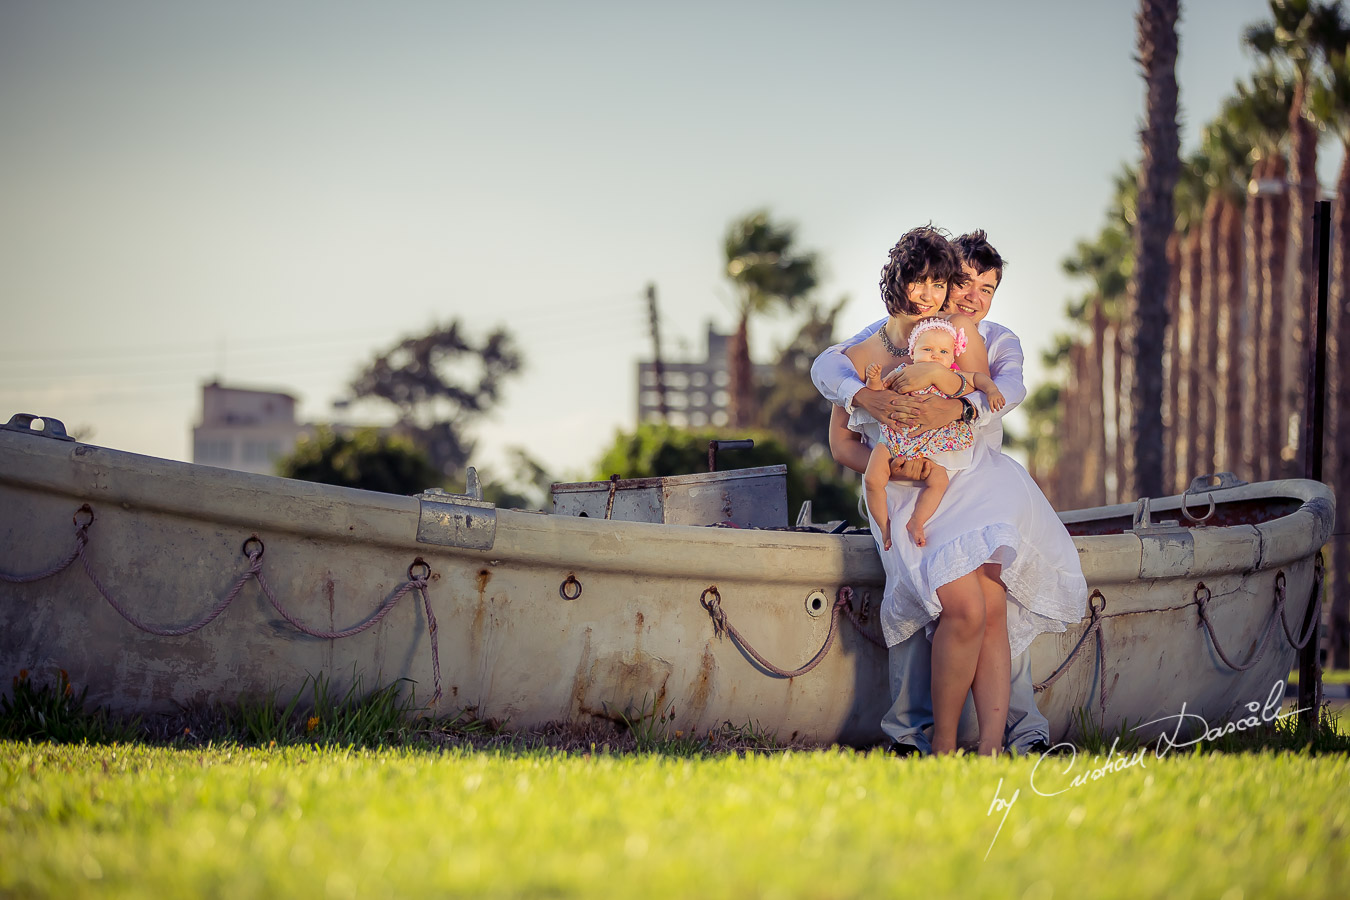 Family Photography in Limassol - Val, Val & Sofia-Aida 06